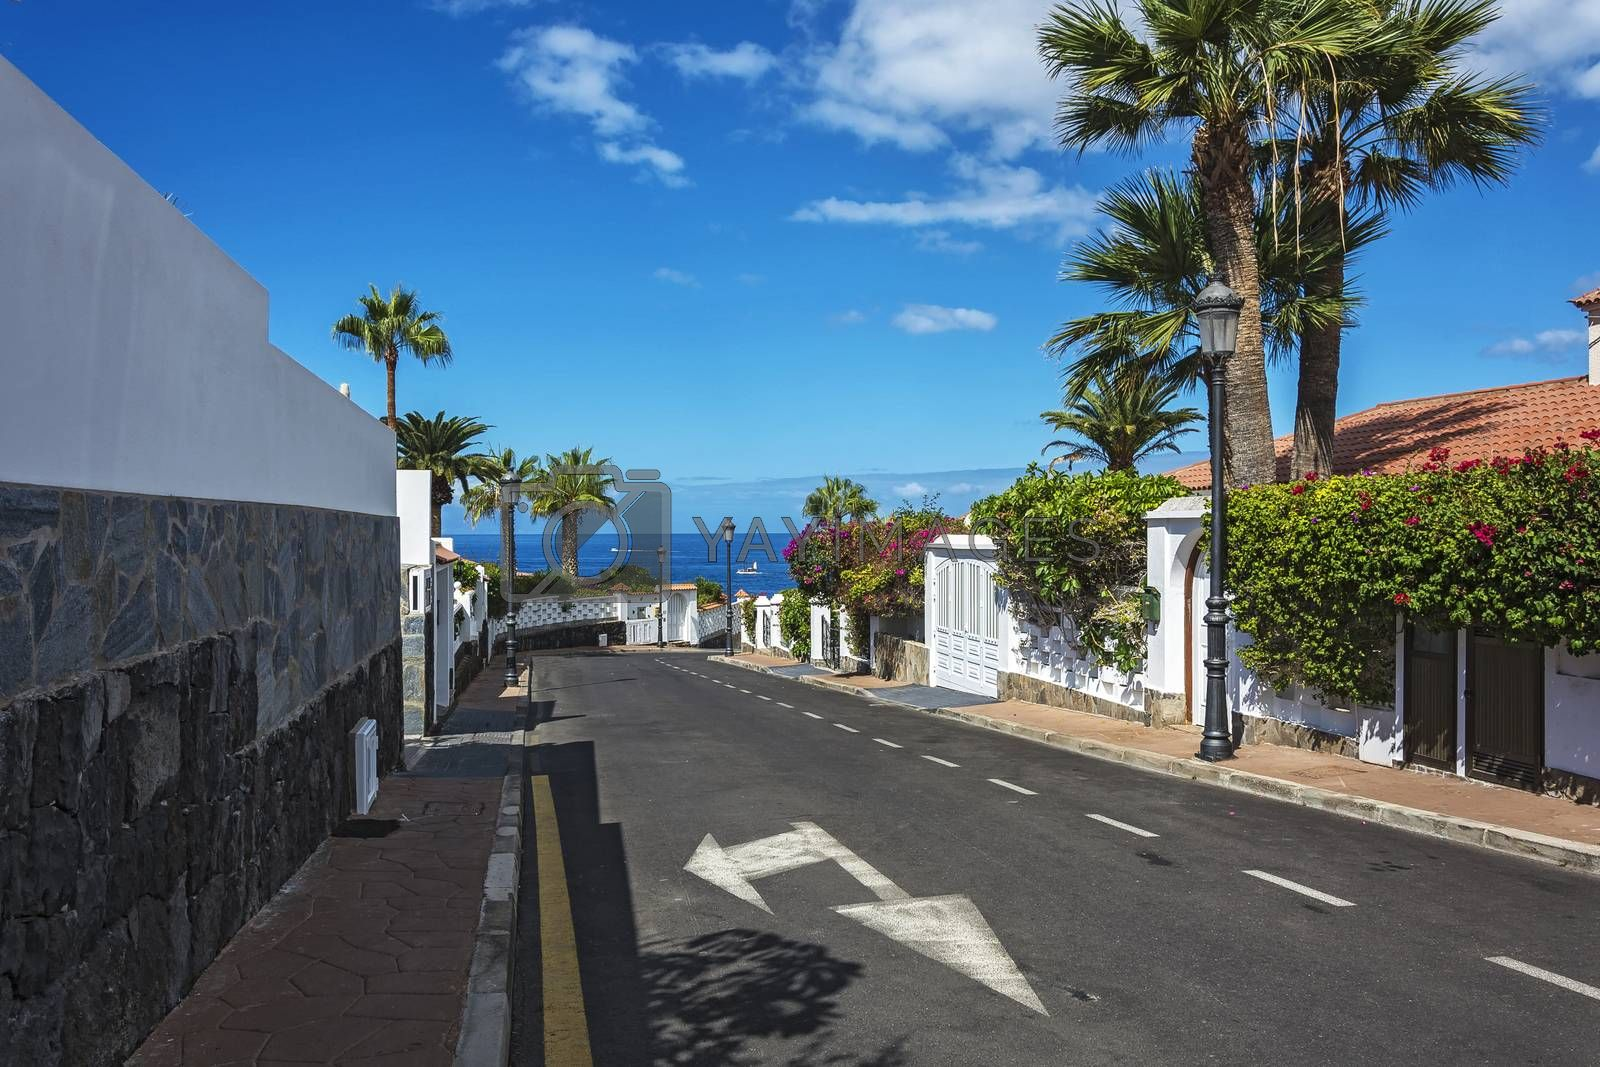 The city of scenic landscape with views of the ocean (Los Canary Islands, Tenerife, Spain)